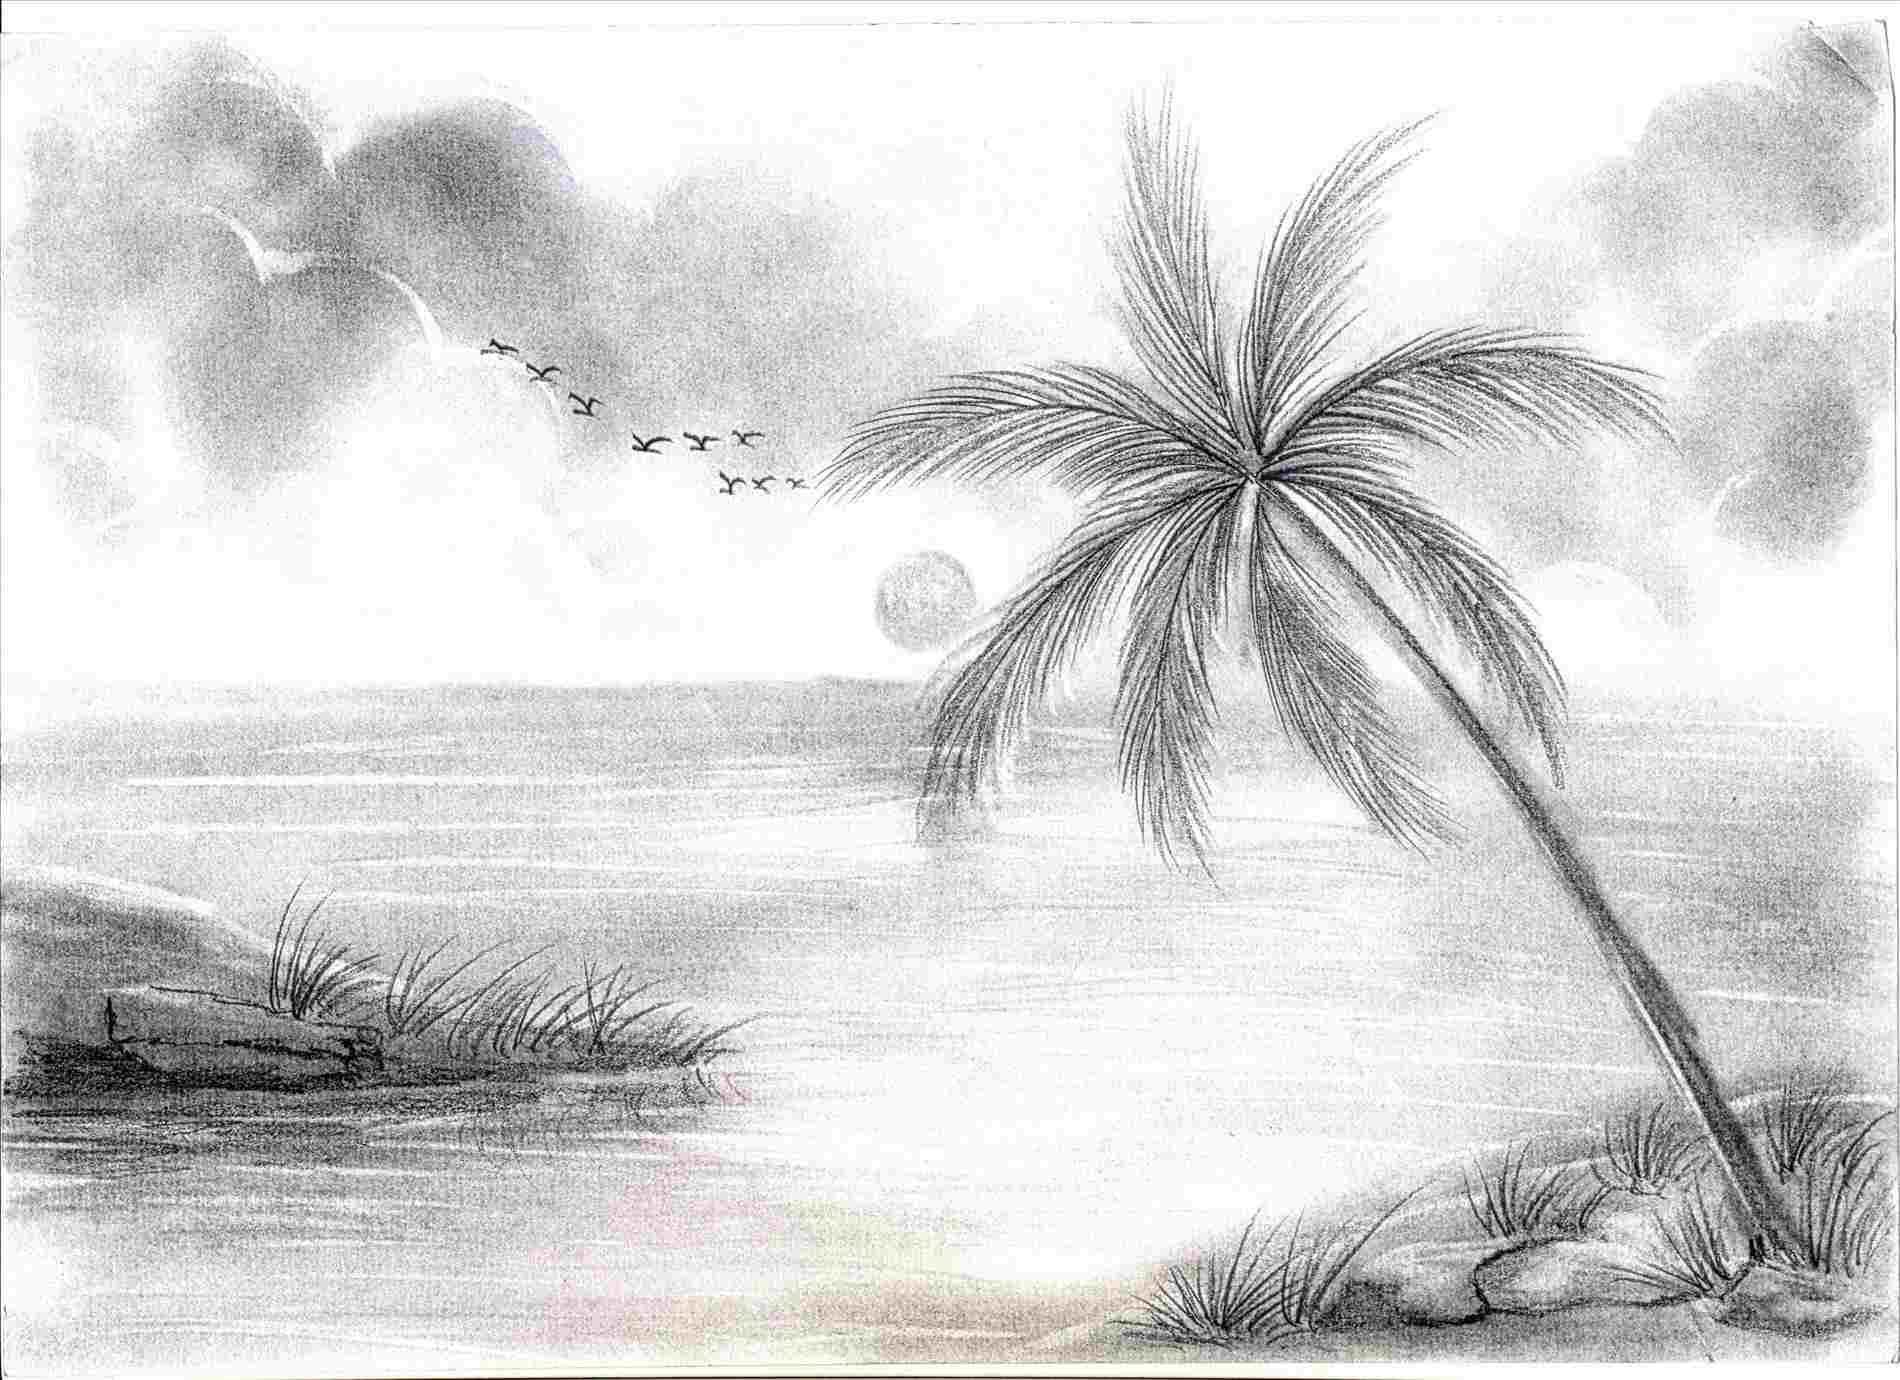 10 Wonderful Ideas For Drawings In Pencil drawing ideas pencil sketch